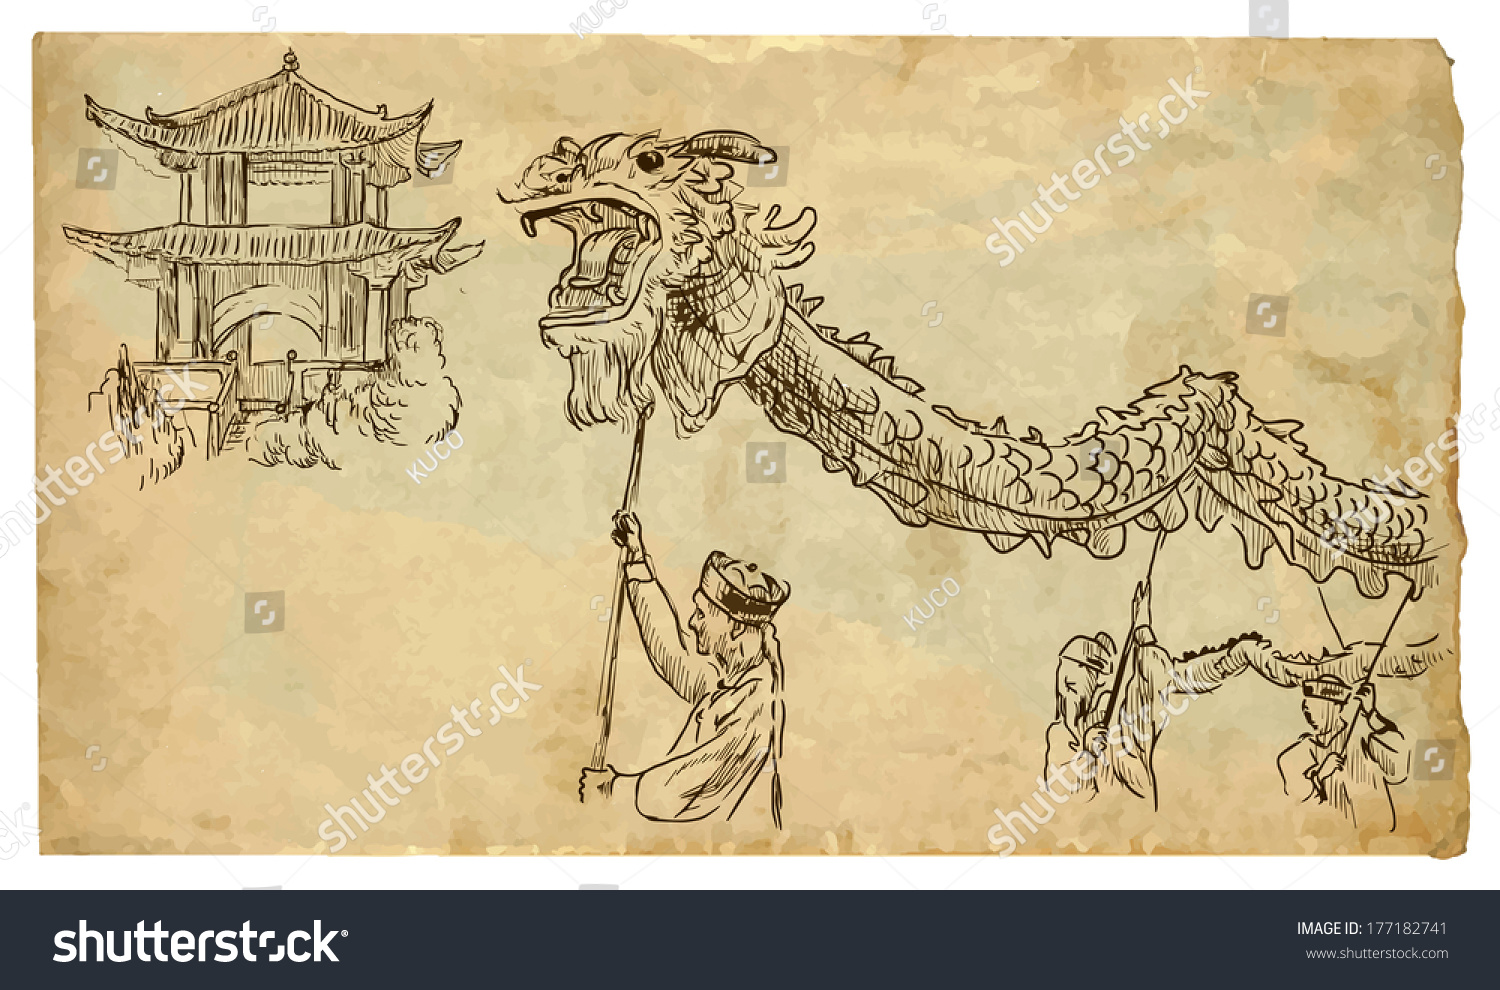 chinese culture the culture of In 1966, china's communist leader mao zedong launched what became known as the cultural revolution in order to reassert his authority over the chinese government.